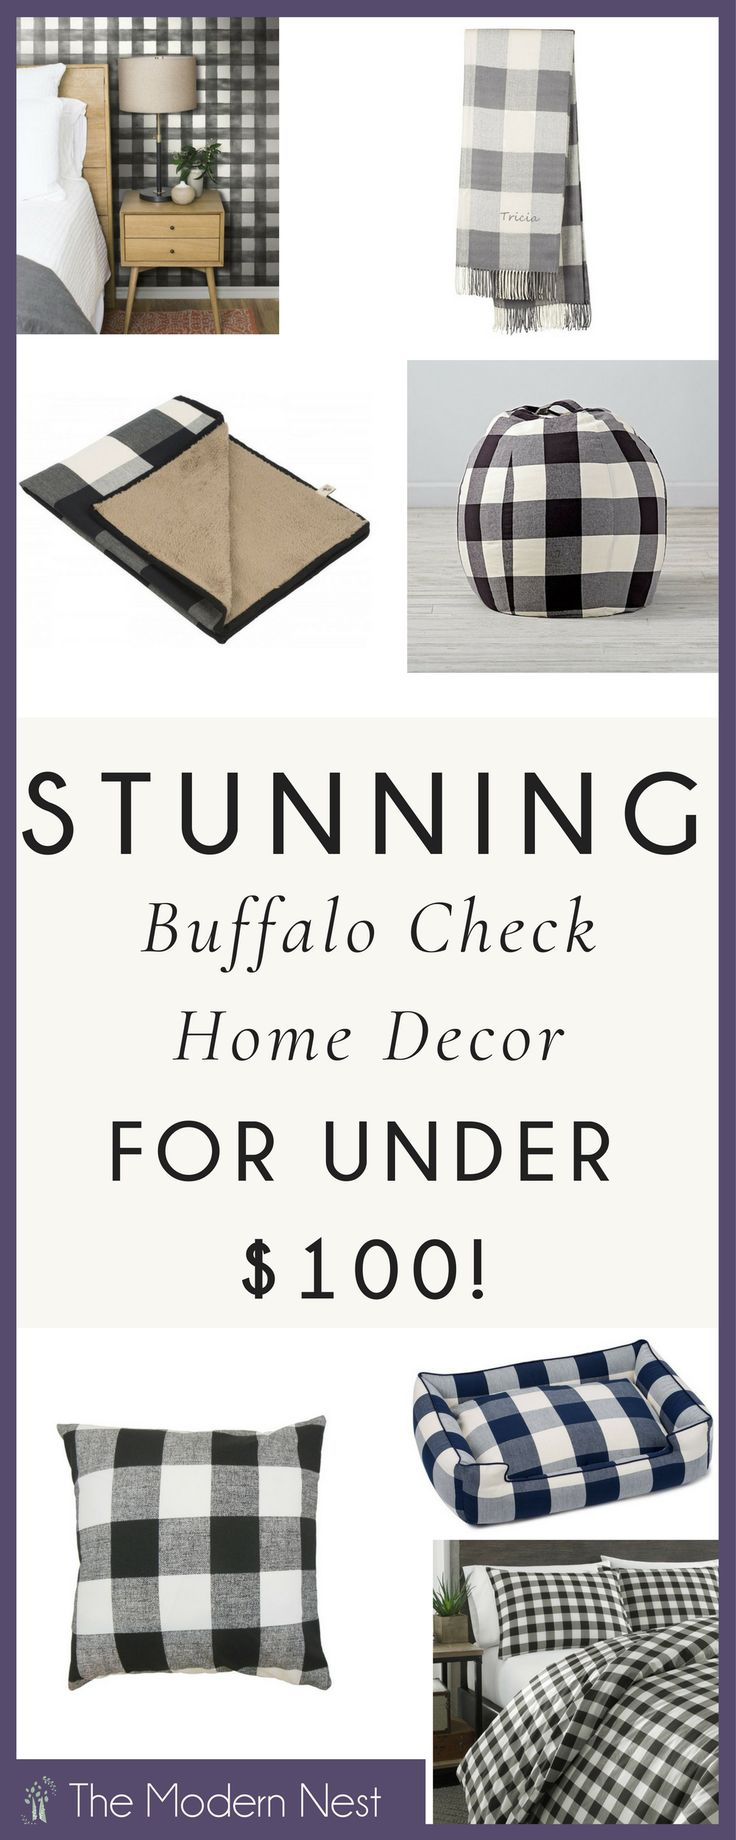 Looking for buffalo check decor on a budget? Look no more! Here's a roundup of over twenty buffalo check items for every room in your home...all under $100! From pillows and blankets to totes and even mugs...this post covers it all! Find more at https://www.themodernnestblog.com/archives/1840